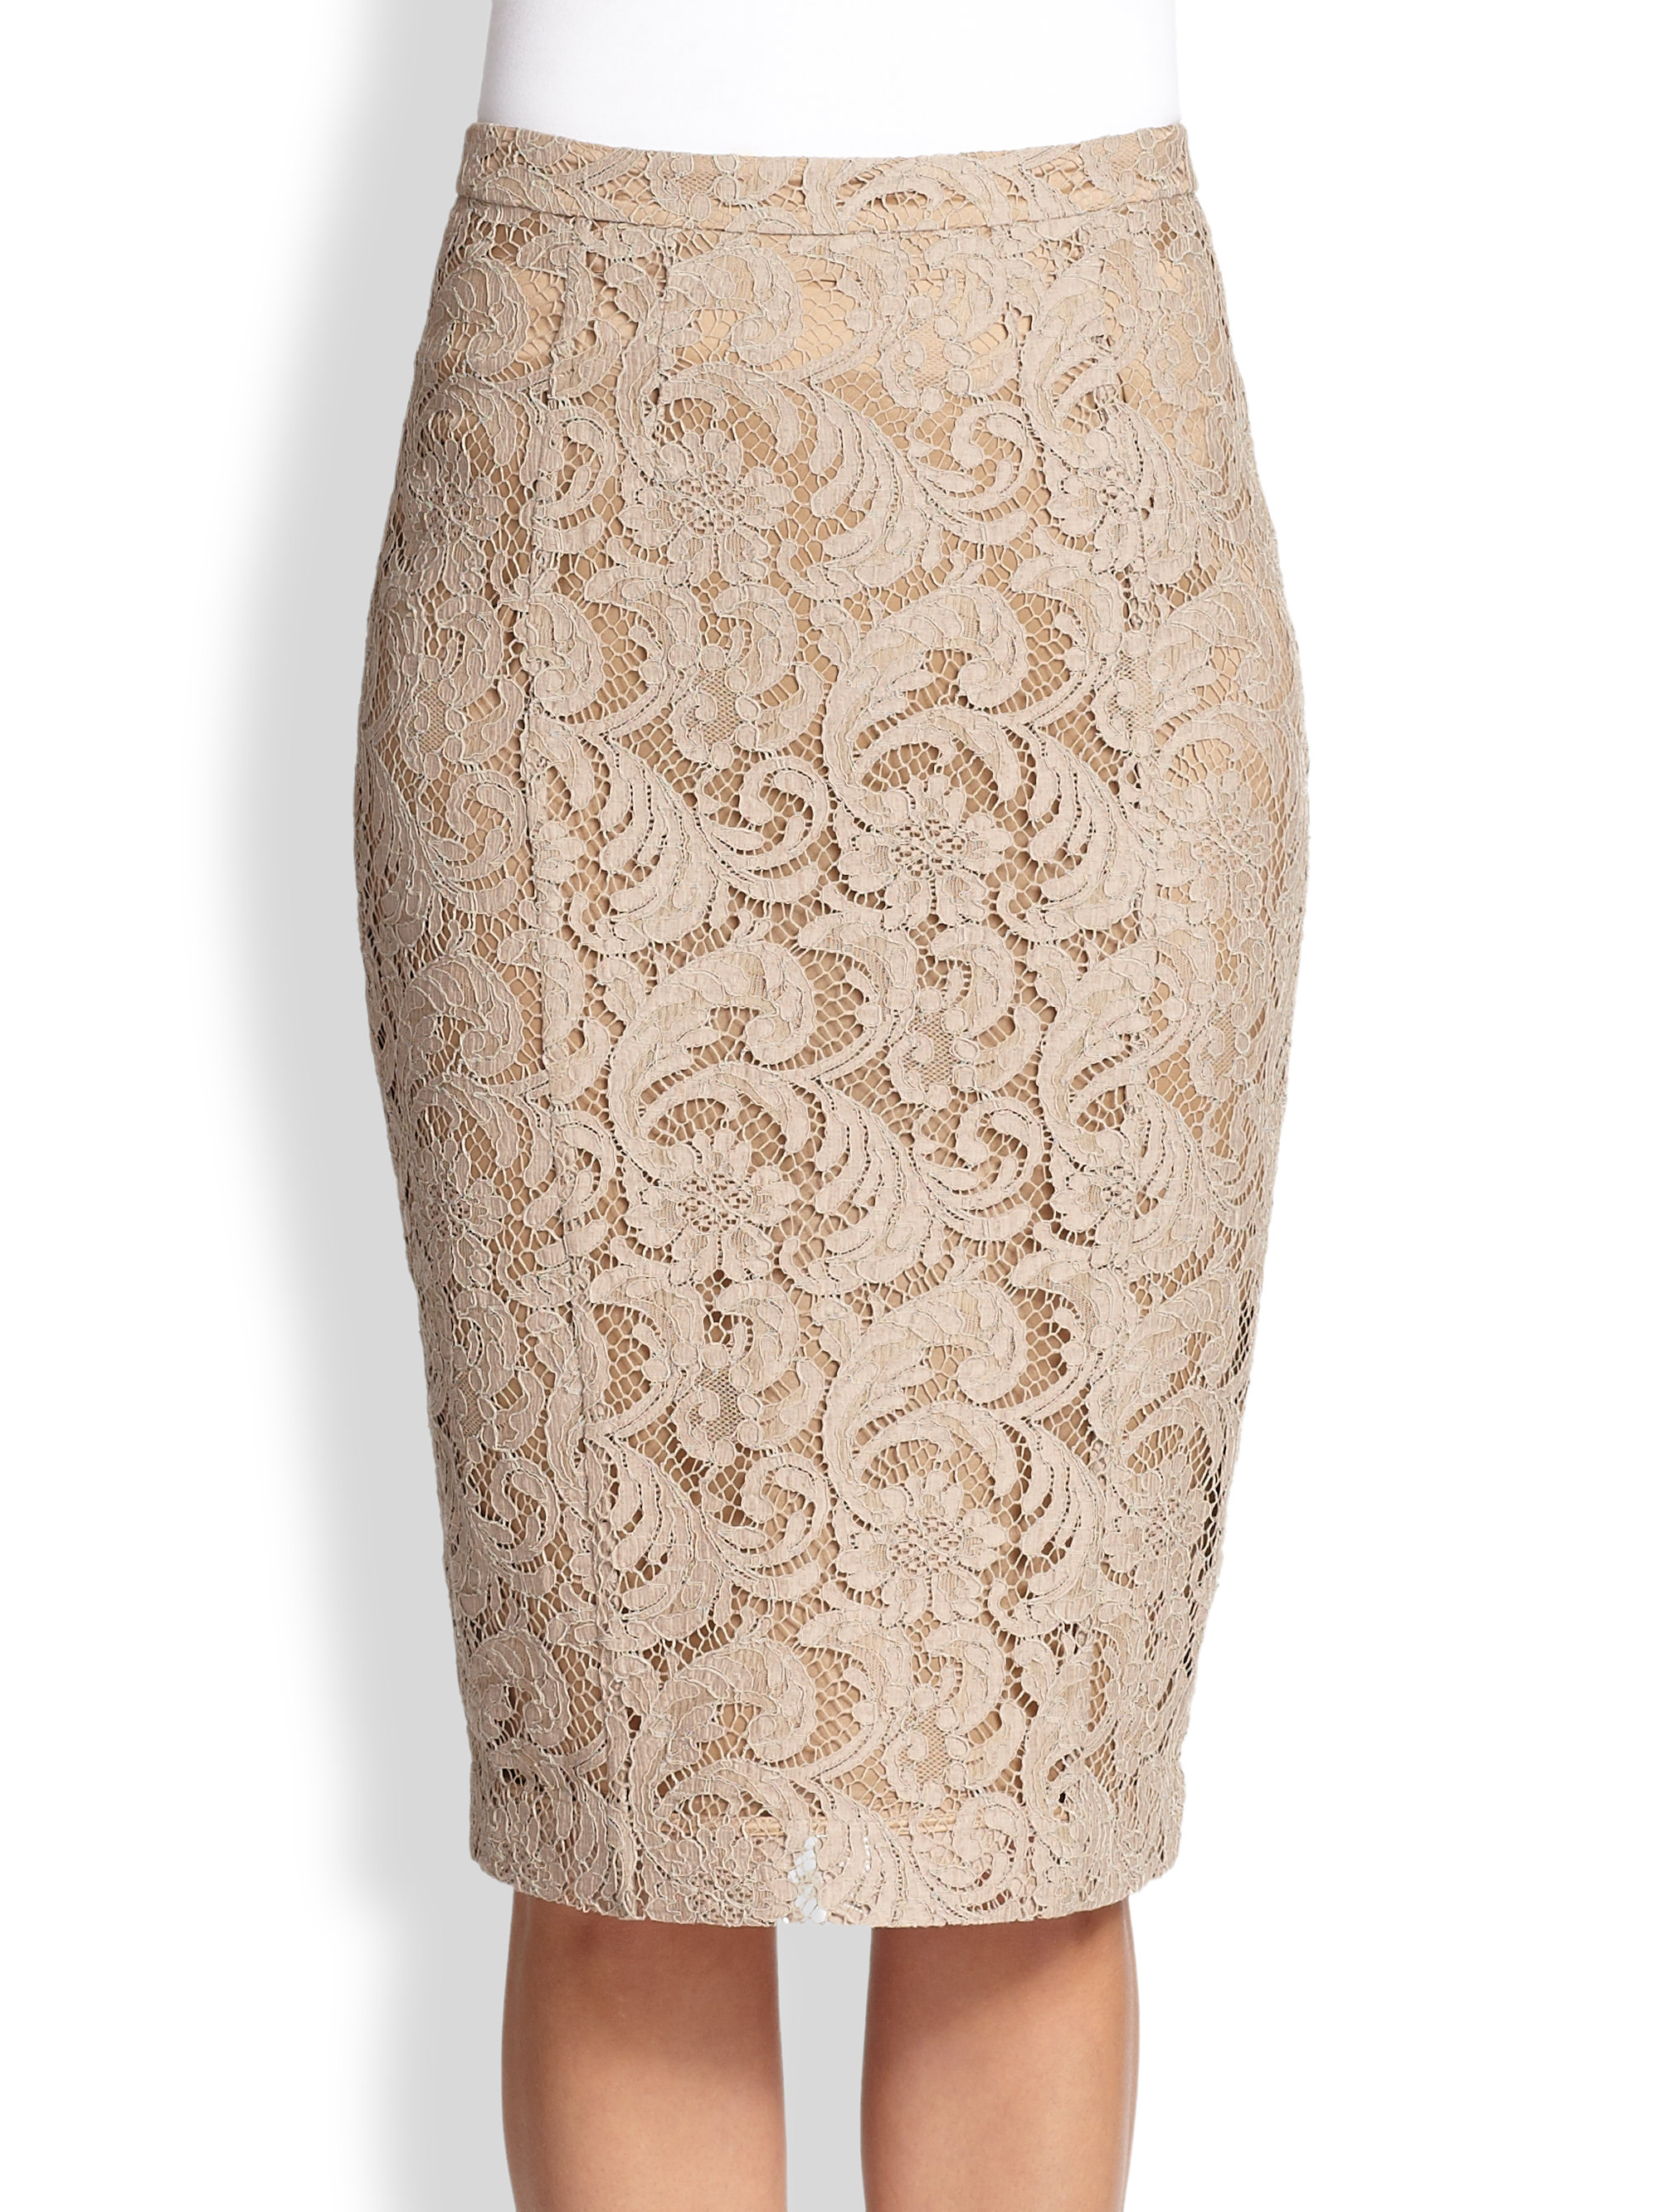 Burberry Lace Pencil Skirt in Natural | Lyst